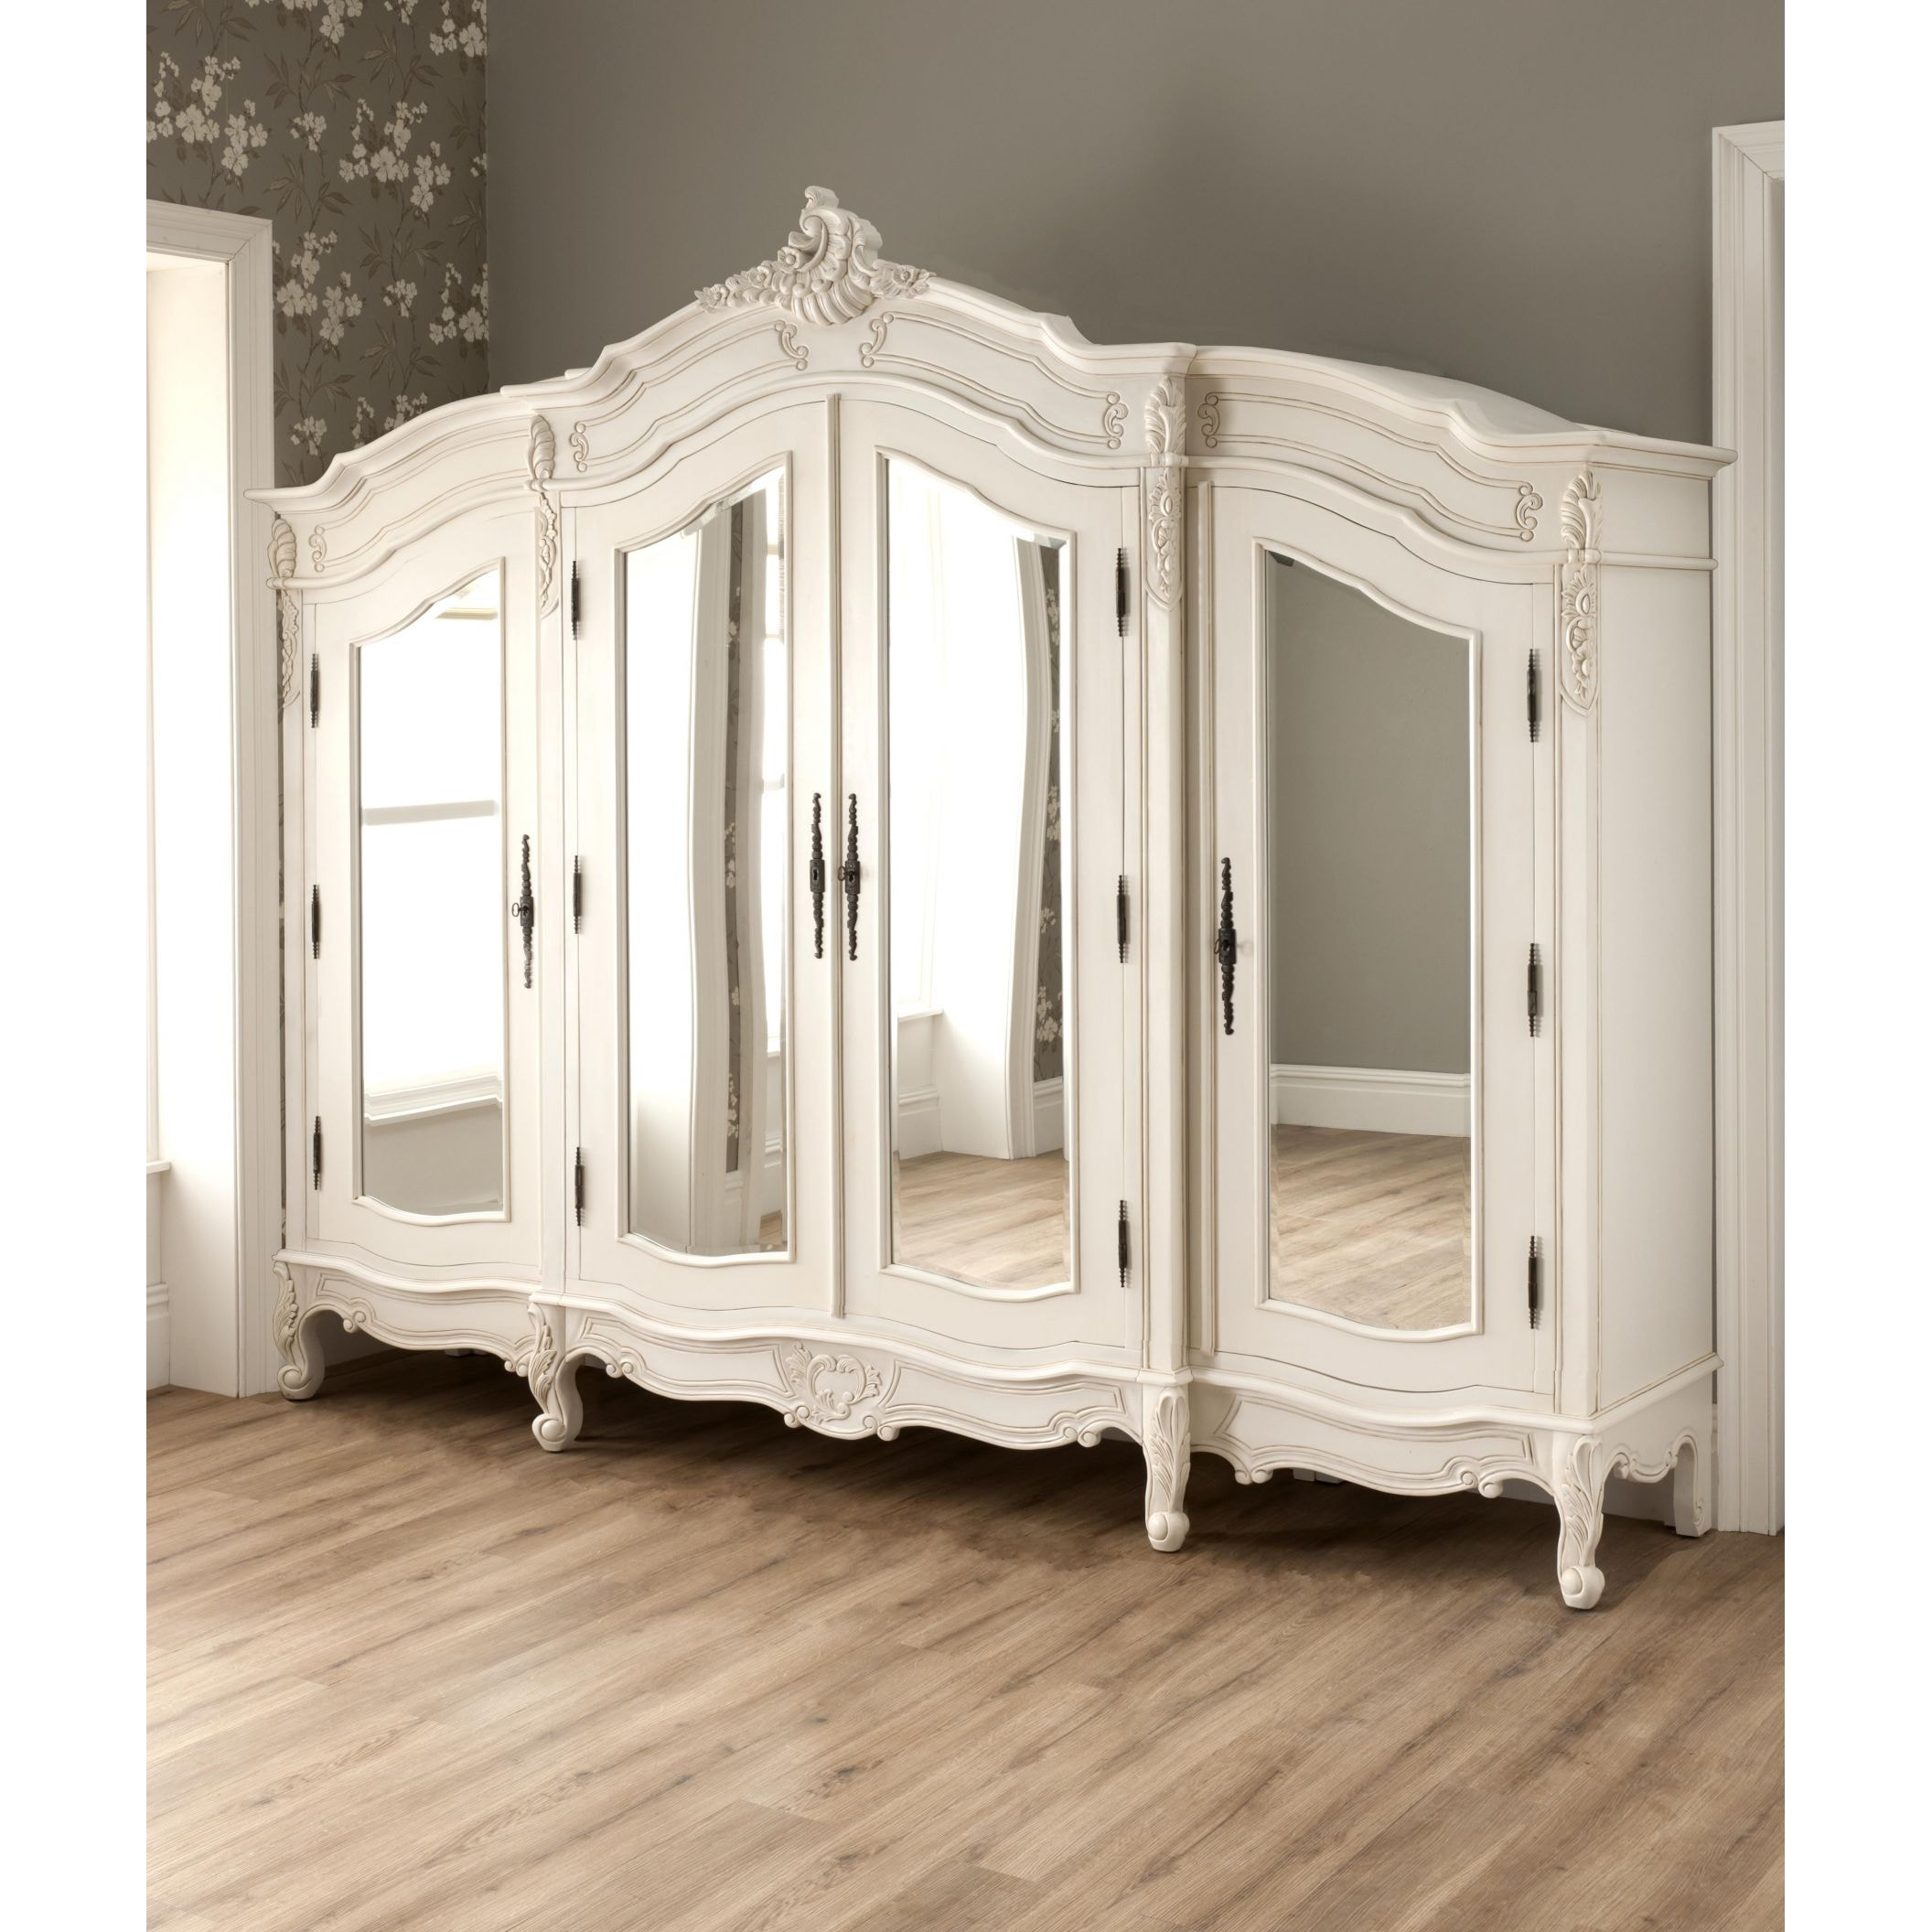 Large bathroom mirrors for sale - Wardrobes Amp Armoires Antique White Large Antique French Style Wardrobe